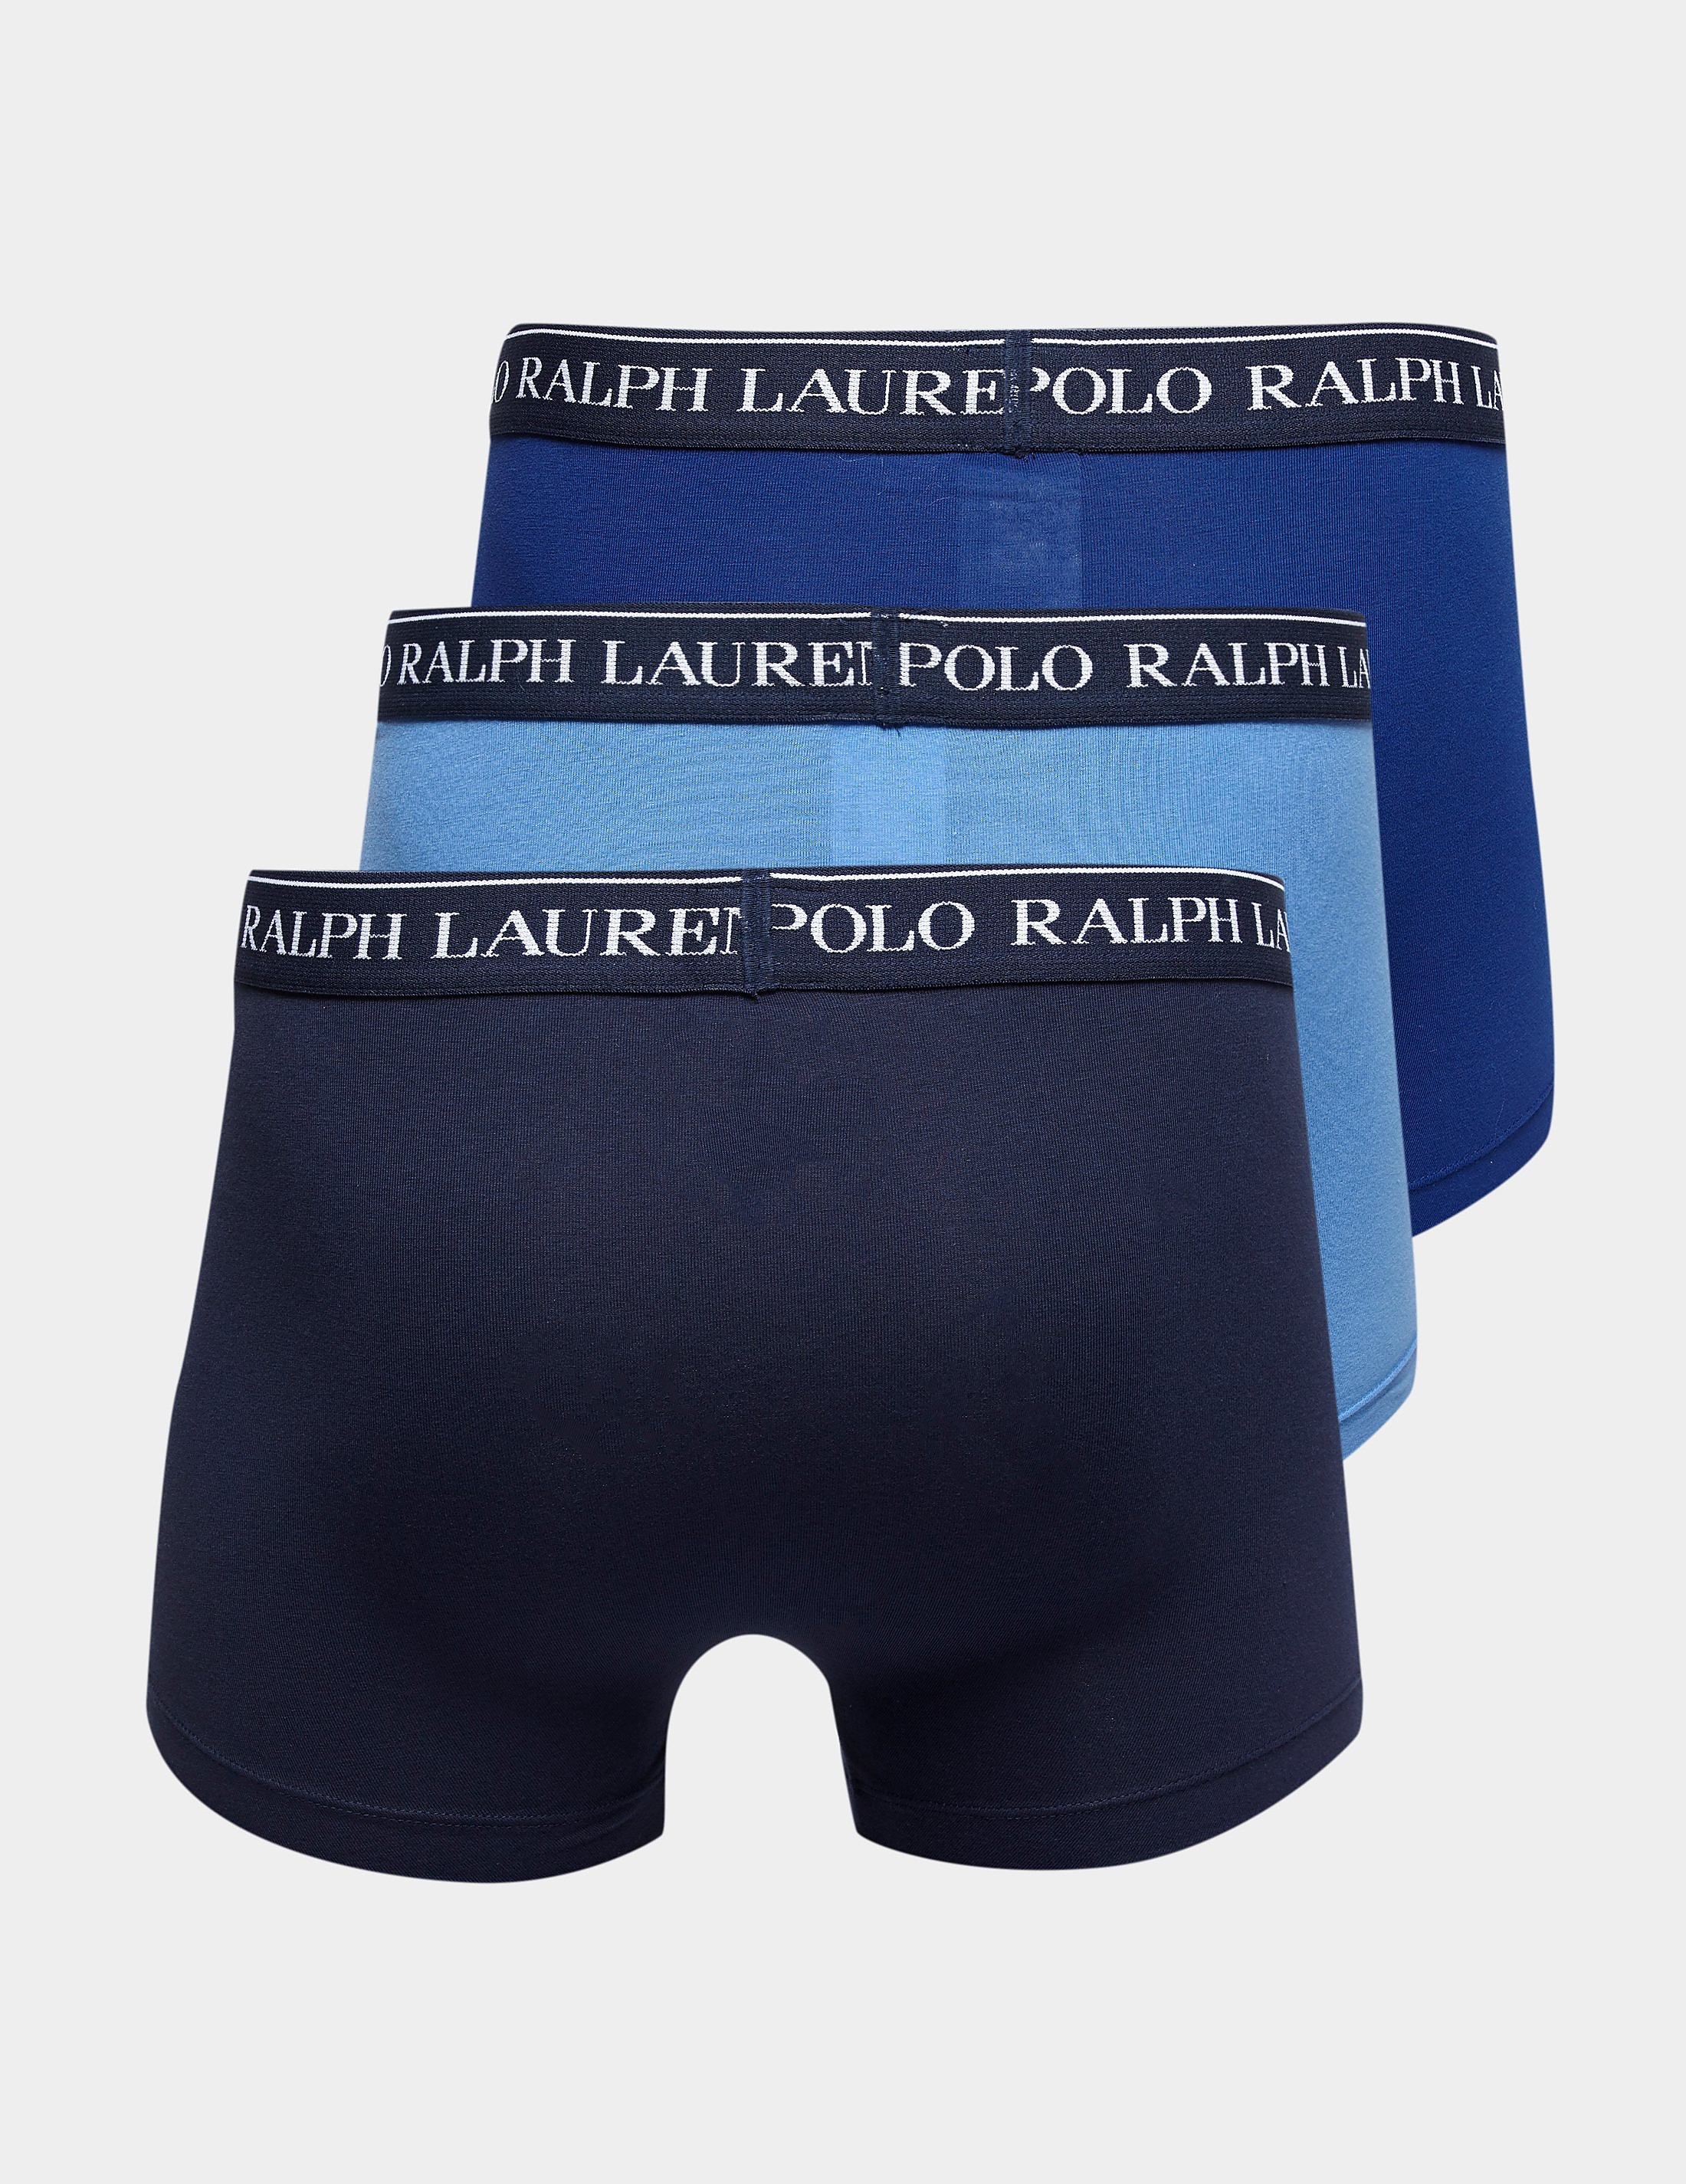 Polo Ralph Lauren 3-Pack Trunks